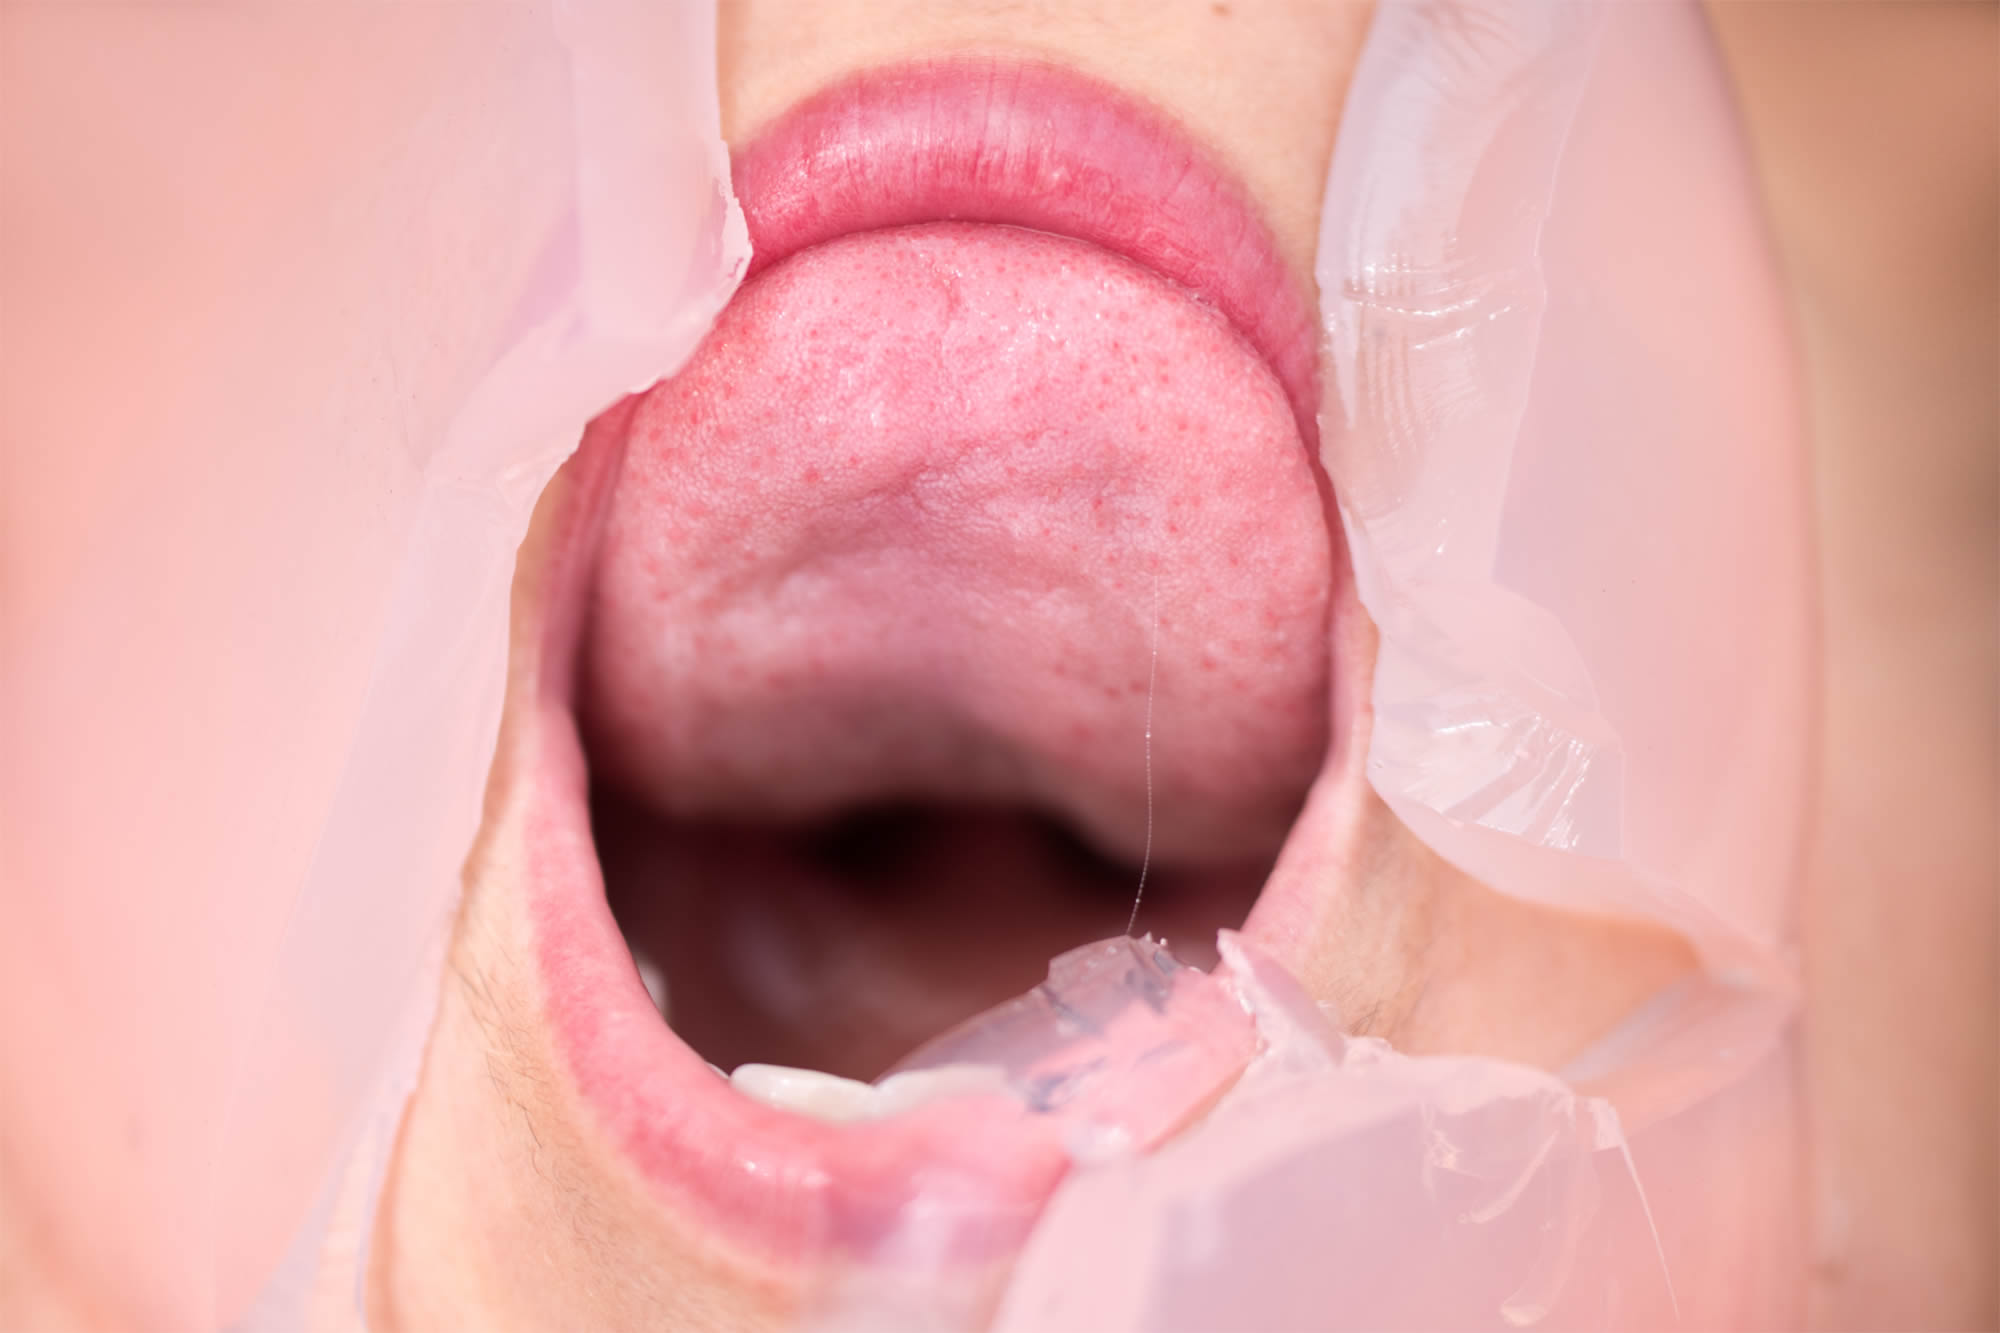 mouth eating pink gelatin, flush photo series